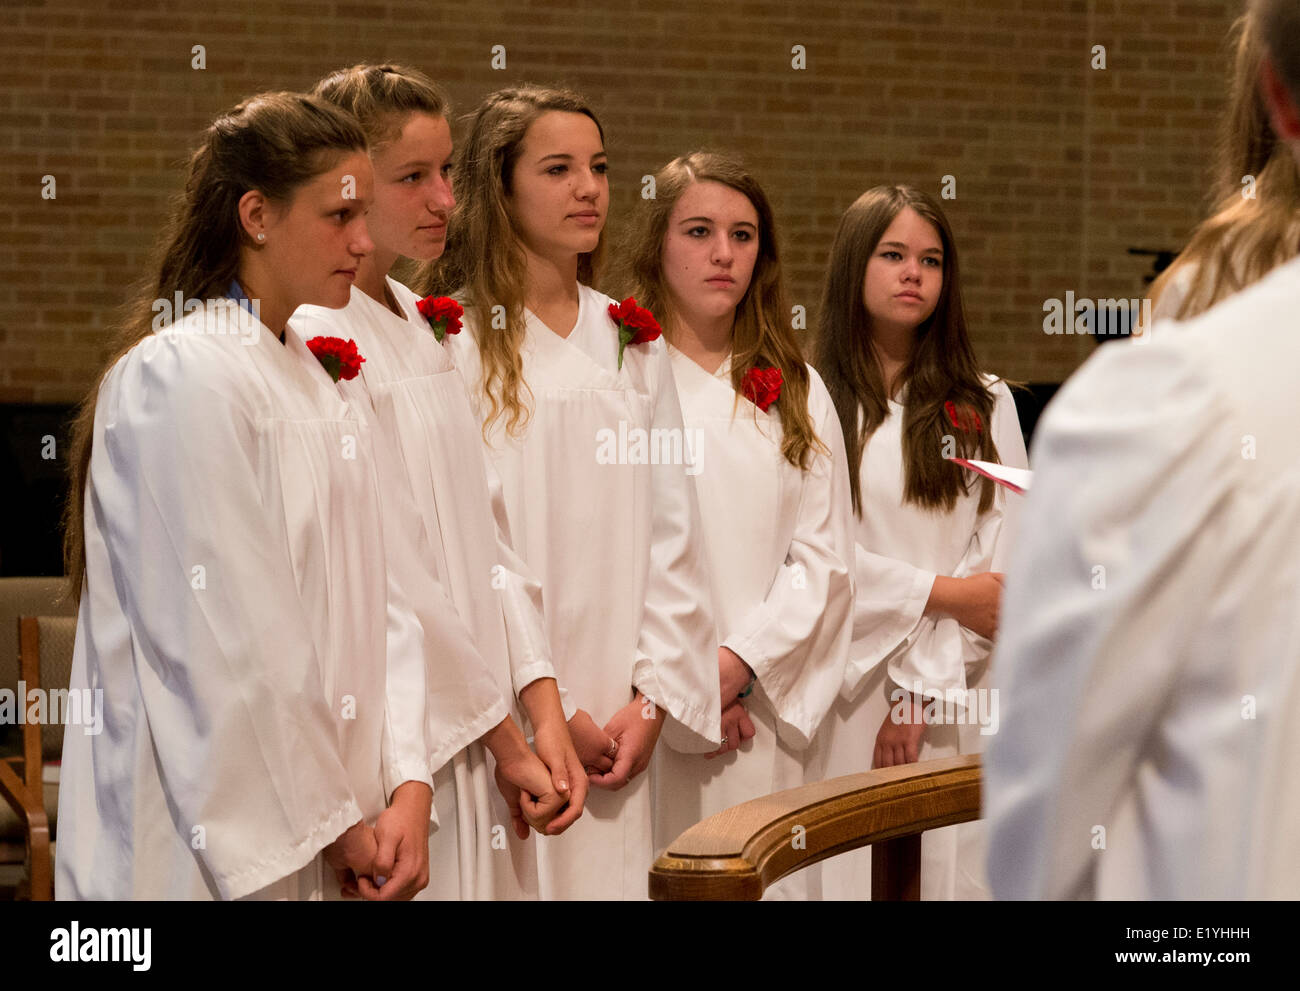 Lutheran teenagers participate in the Rite of Confirmation at St. Martin's Lutheran Church in Austin. - Stock Image